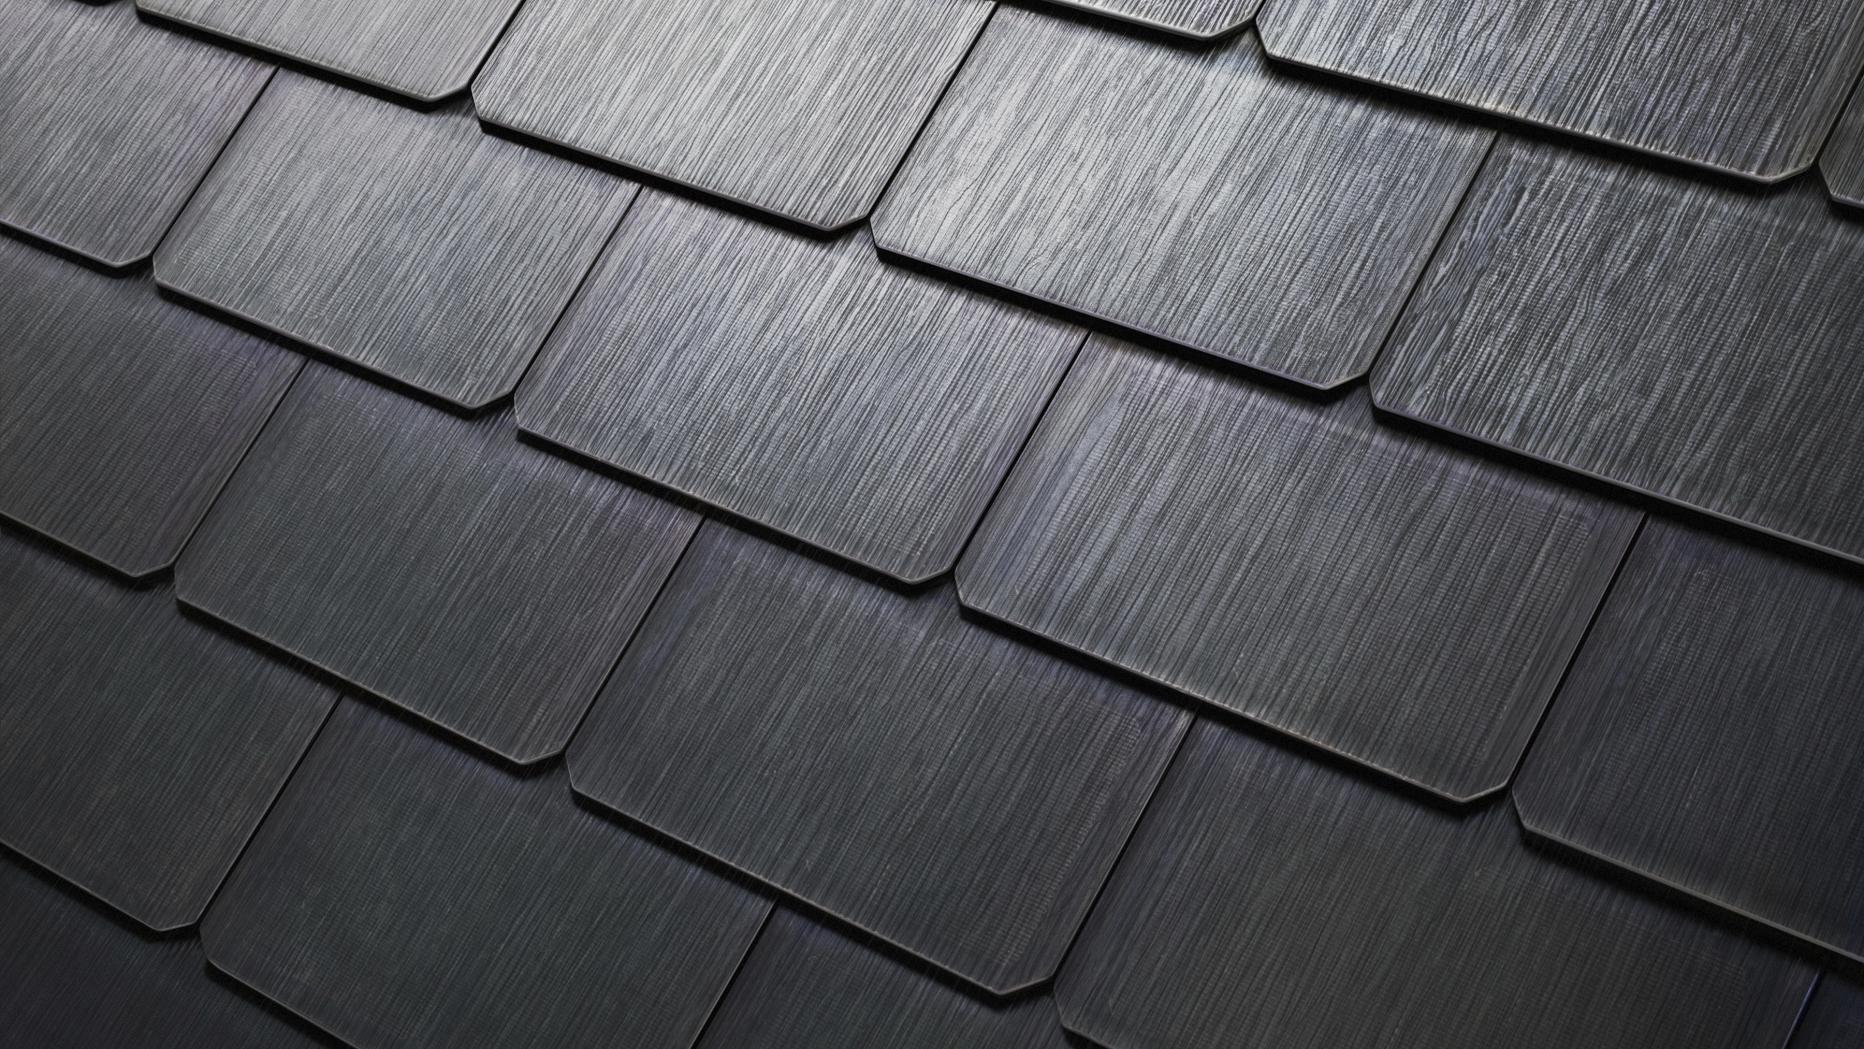 Tesla filed a new patent 'Solar roof tile with a uniform appearance'